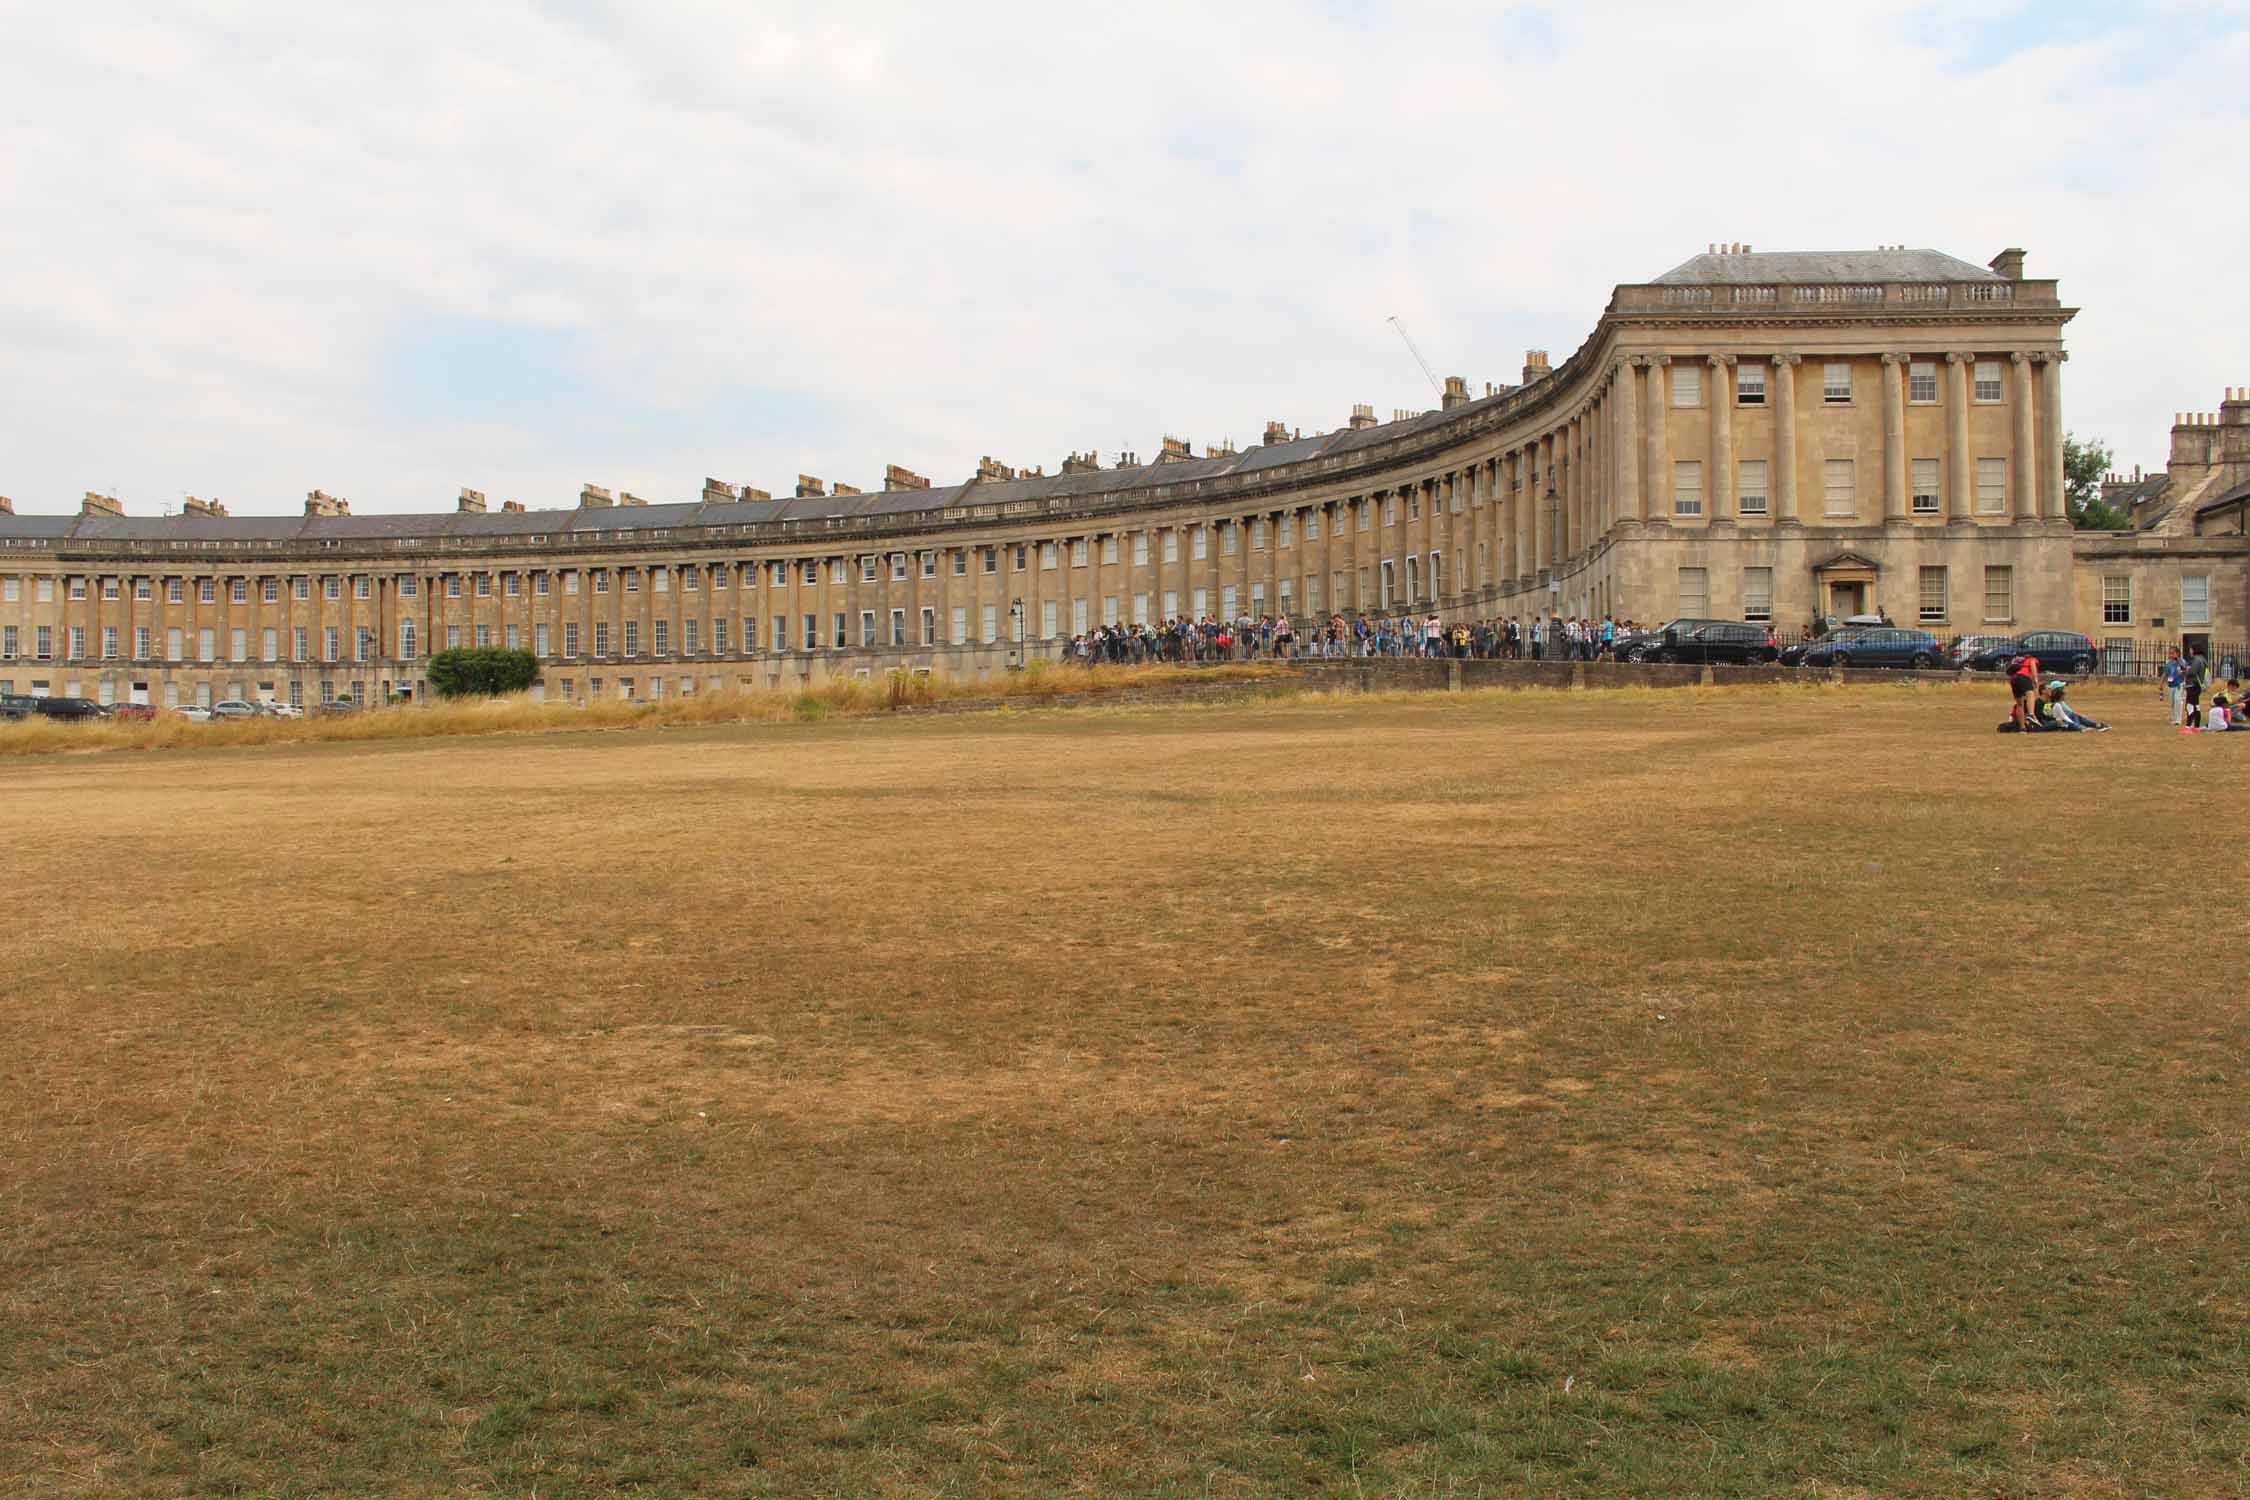 England, Bath, Royal Crescent square